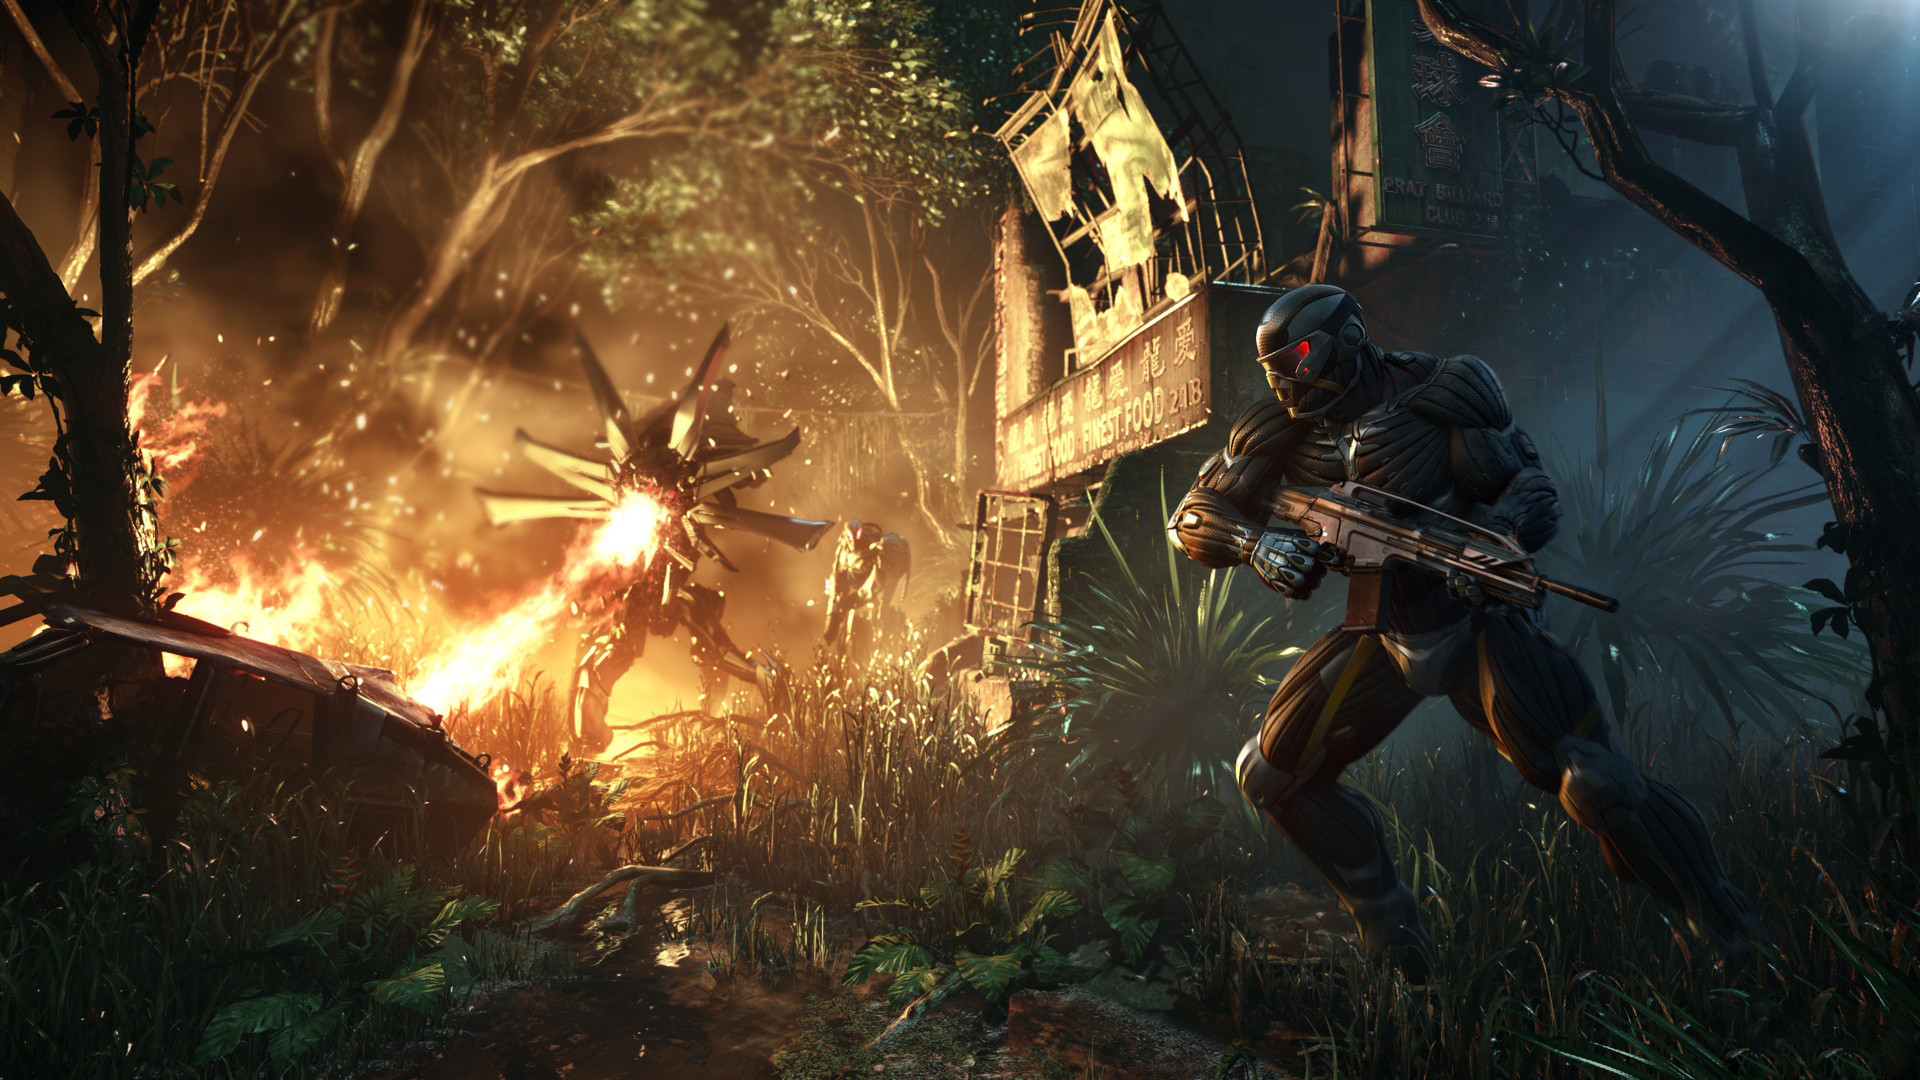 crysis 3 game hd wallpaper | hd latest wallpapers